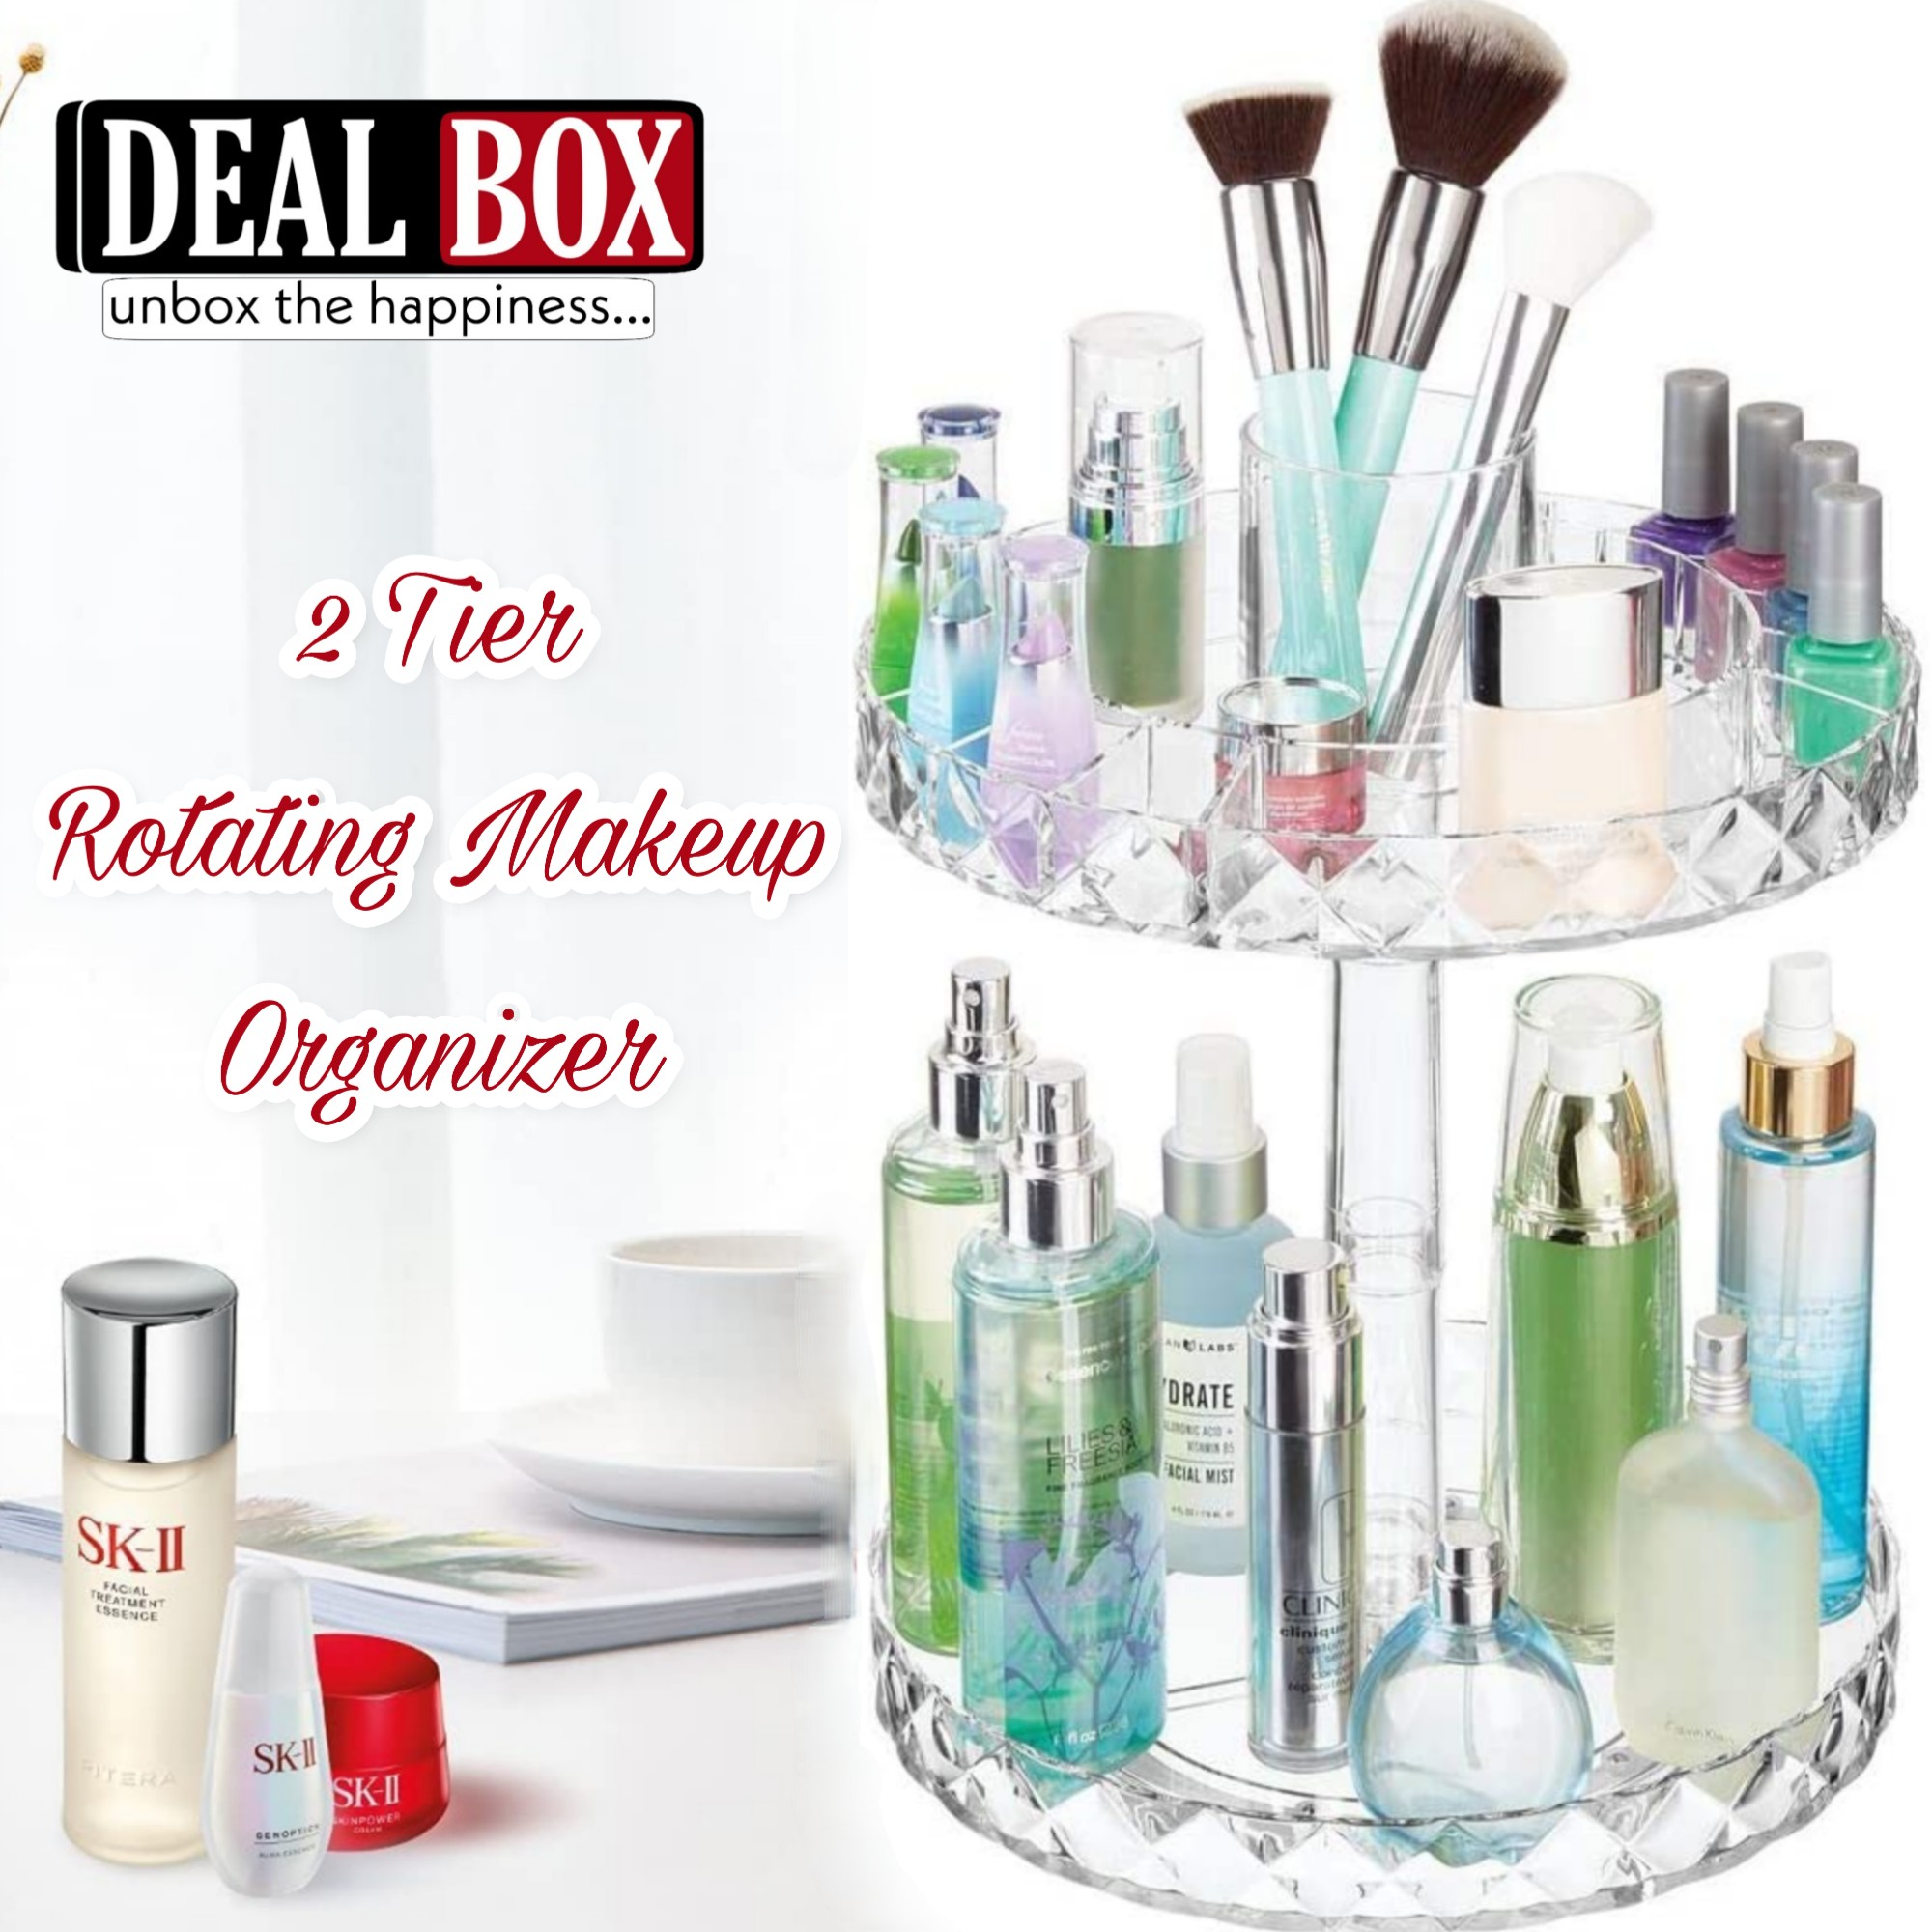 360° Rotating Makeup Organizer Stand 2 Tier - Cosmetic Holder Acrylic